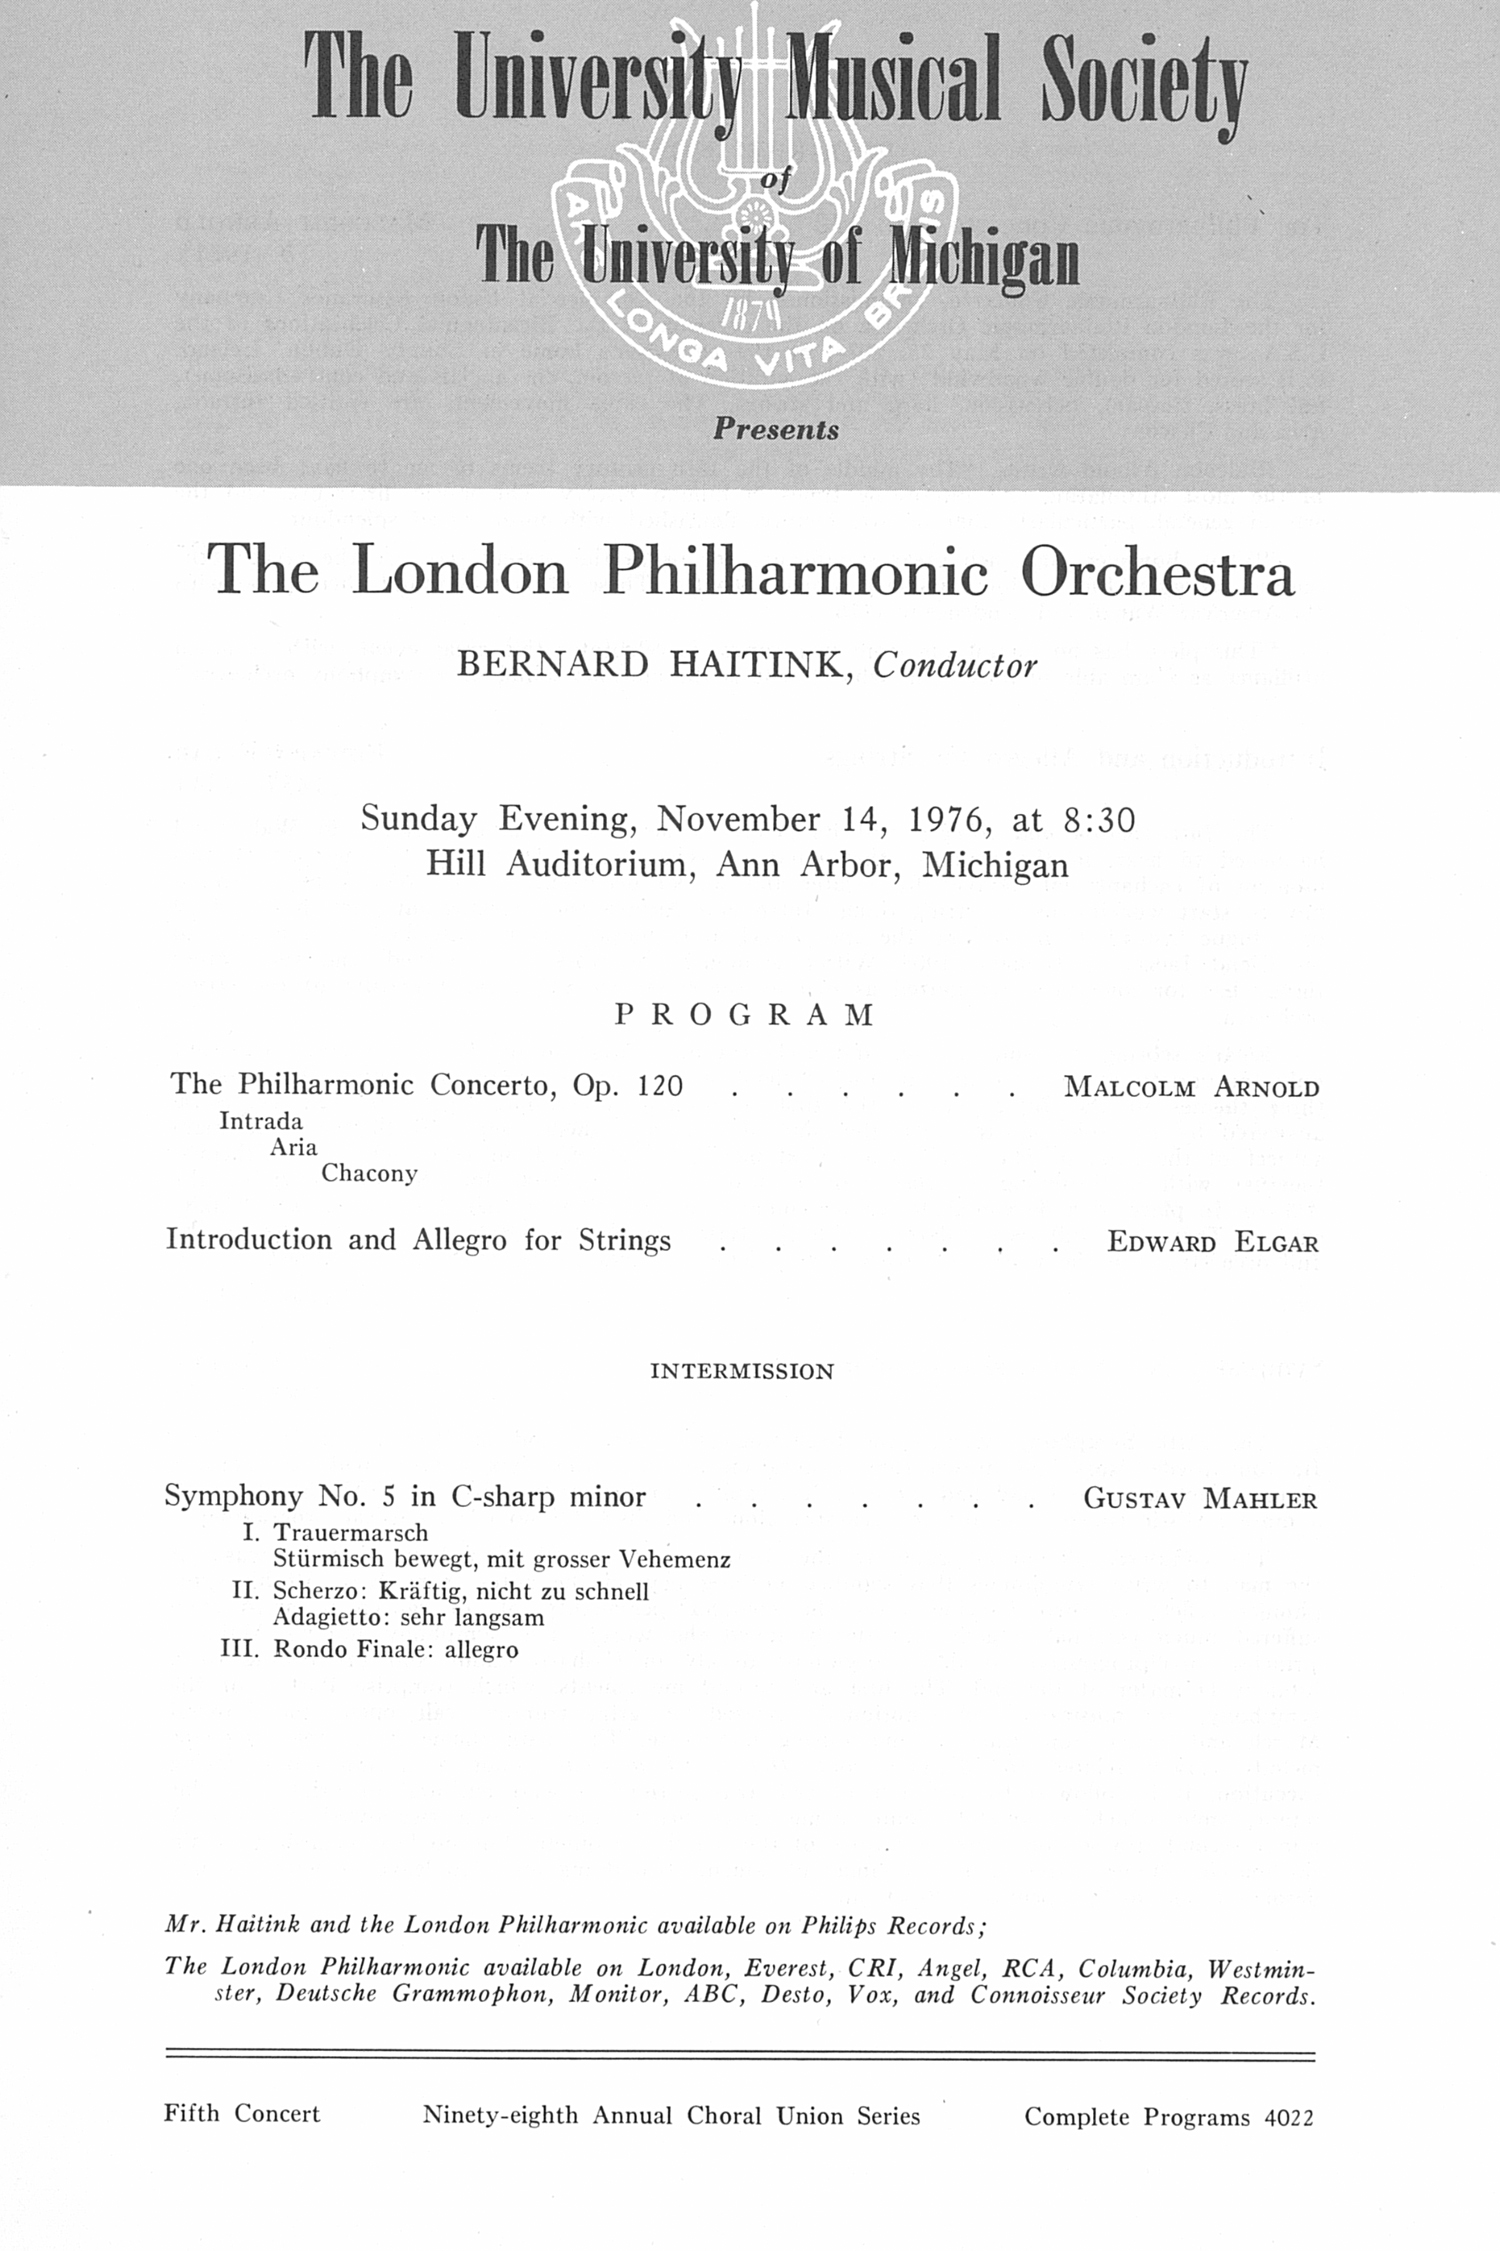 UMS Concert Program, November 14, 1976: The London Philharmonic Orchestra --  image